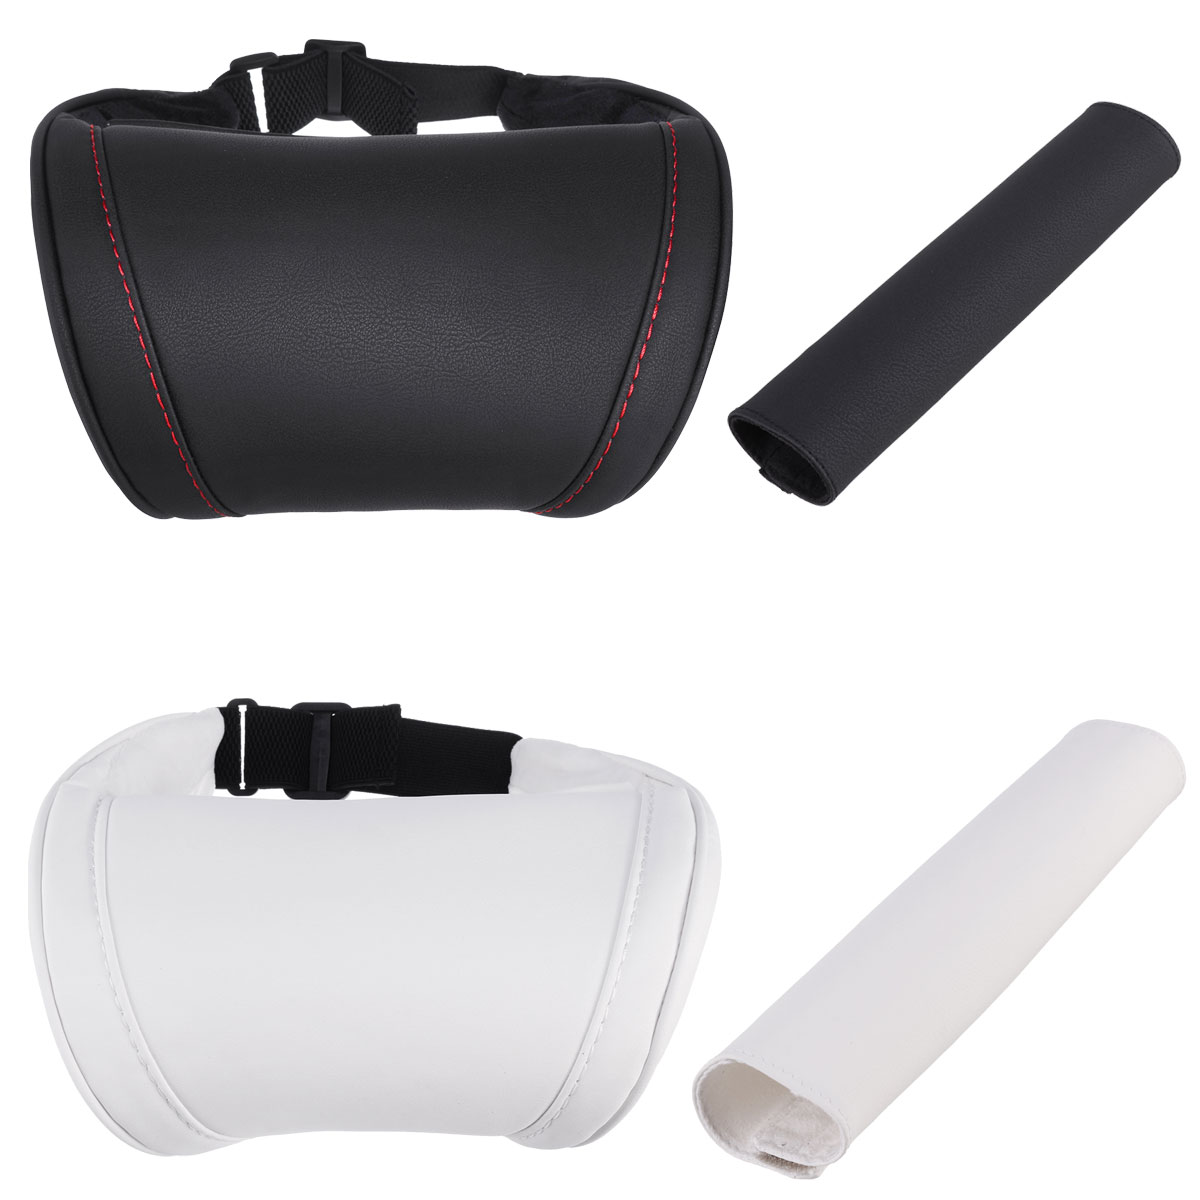 Car Pillows Headrest Neck Rest Cushion Support Seat Accessories Black White Safety Pillow For Tesla